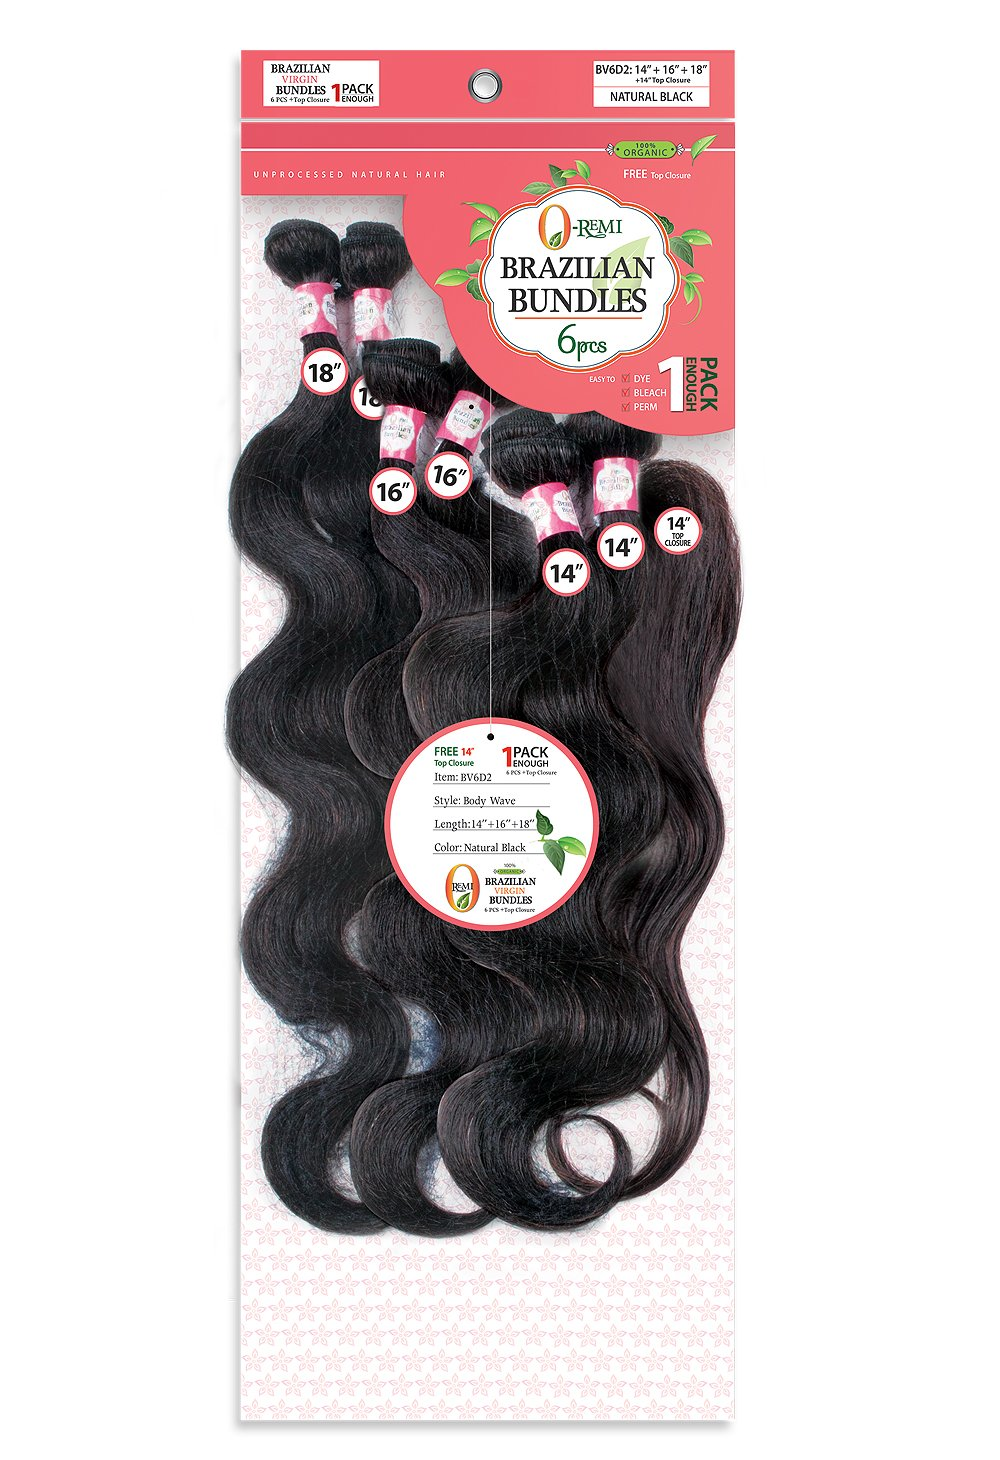 O-Remi Brazilian Bundles - 6Pcs Bundle - Body Wave 100% Human Hair Remi + Top Closure 10+12 BV6D0 Human Hair Remi Weaves